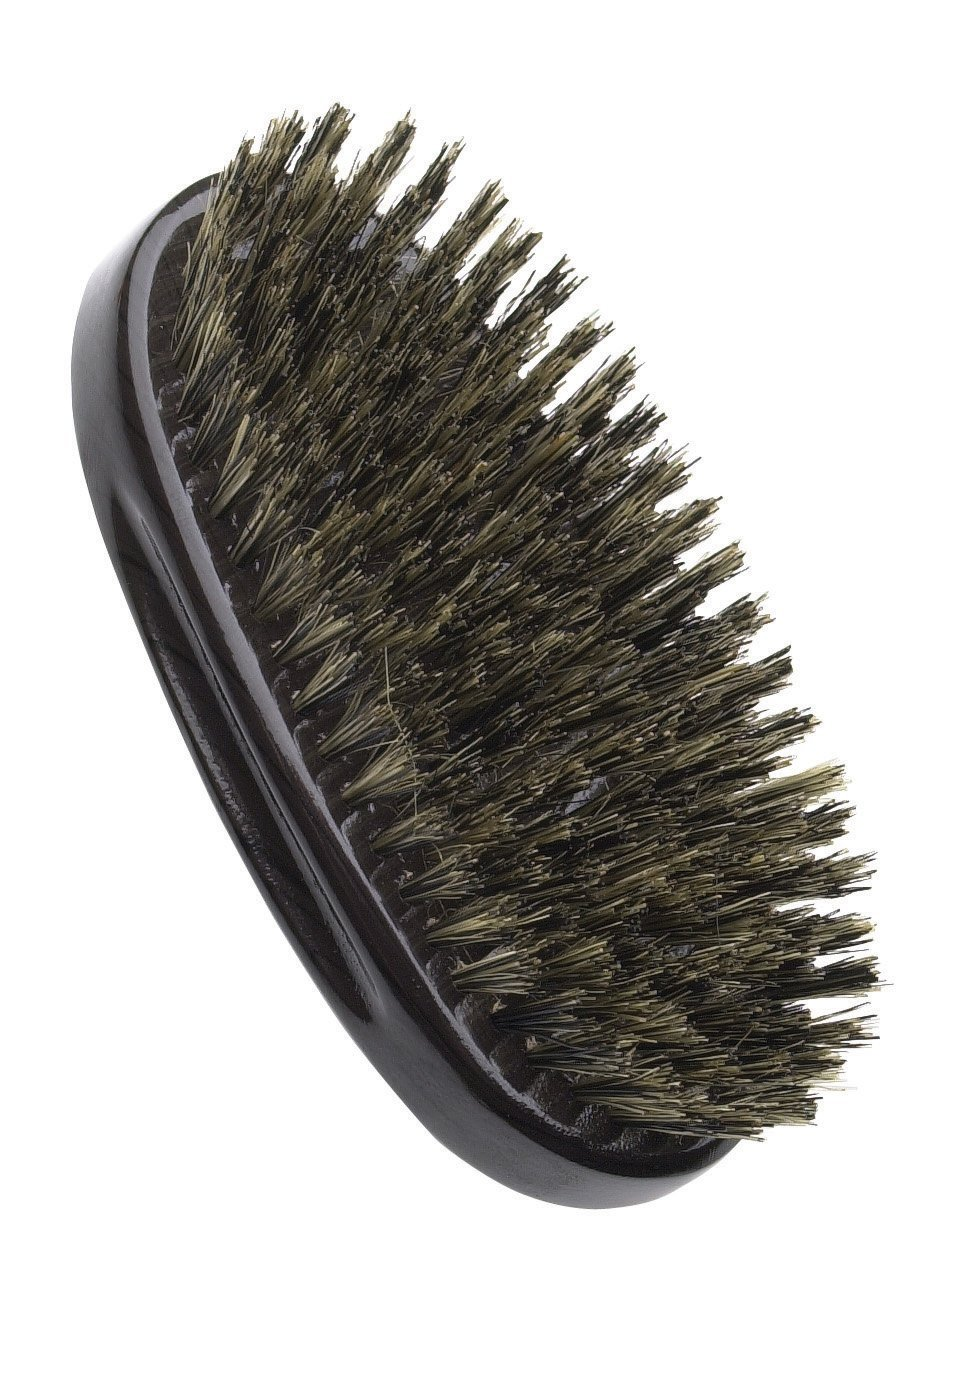 Diane Men's Palm Brush, 100% Boar Bristles - 2 pieces, Boar bristles, dark wood, natural bristle, grey wood handle, gray wood, salon, barber, professional, thick hair, thin hair, mens brush, women brush, adults and kids, won't hurt your head, comb, hair comb